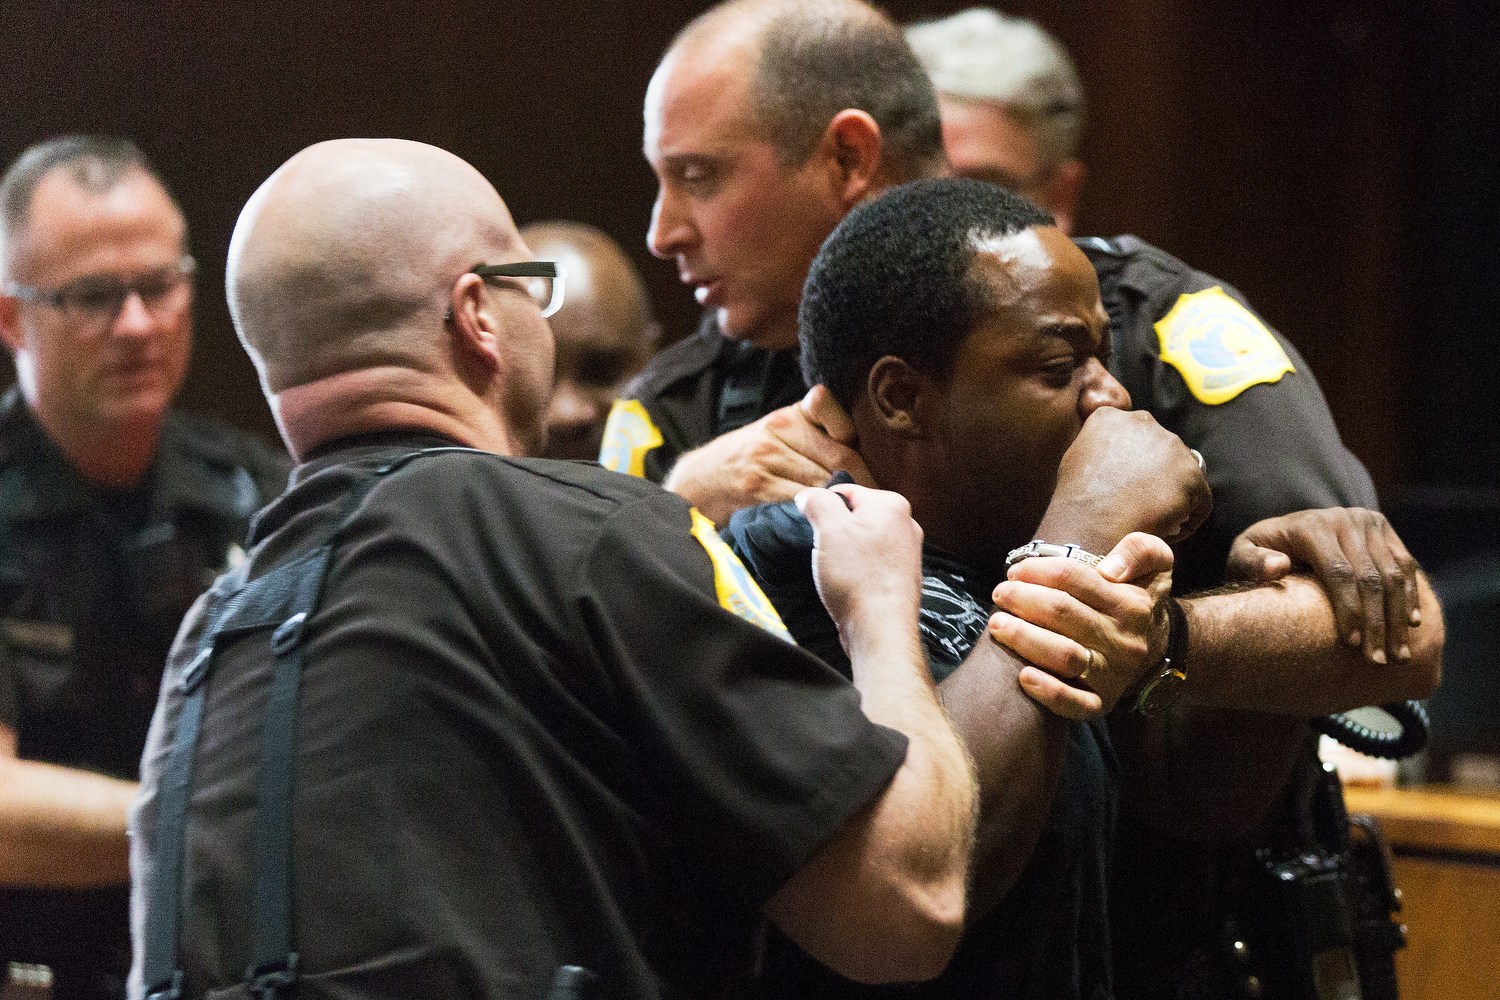 Willie Warren, uncle to 17-year-old Temetrion Hegler, is restrained by officers after attempting to attack Bruce Embry, who murdered Hegler, during Embry's first degree murder sentencing at Kalamazoo County Courthouse in Kalamazoo, Mich. on Monday, Aug. 15, 2016. Embry was sentenced to life in prison without the possibility of parole.